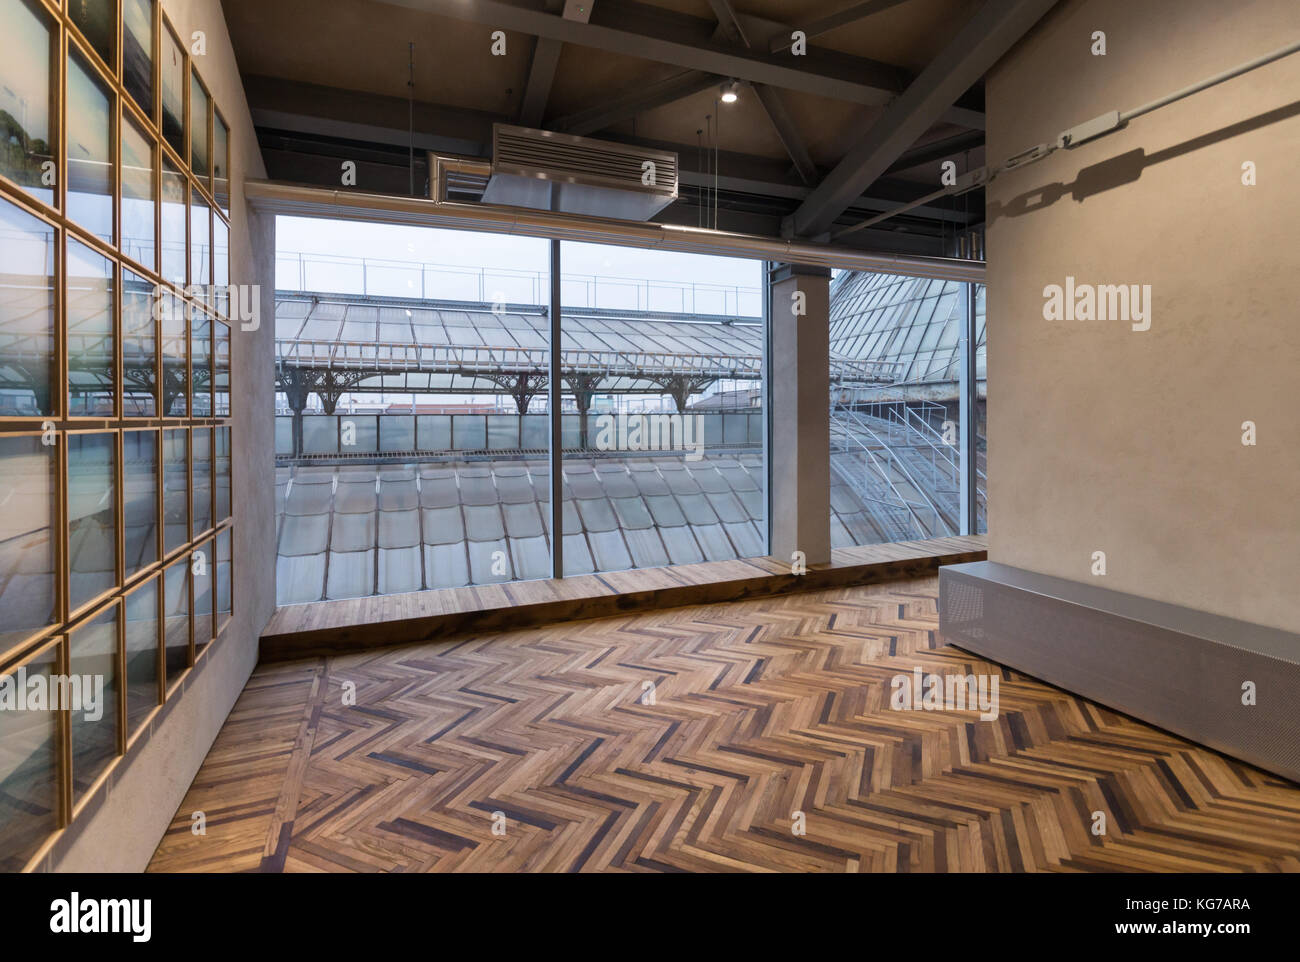 Milano Osservatorio, Observatory, Prada Foundation, photography exhibition space & gallery, Galleria Vittorio - Stock Image